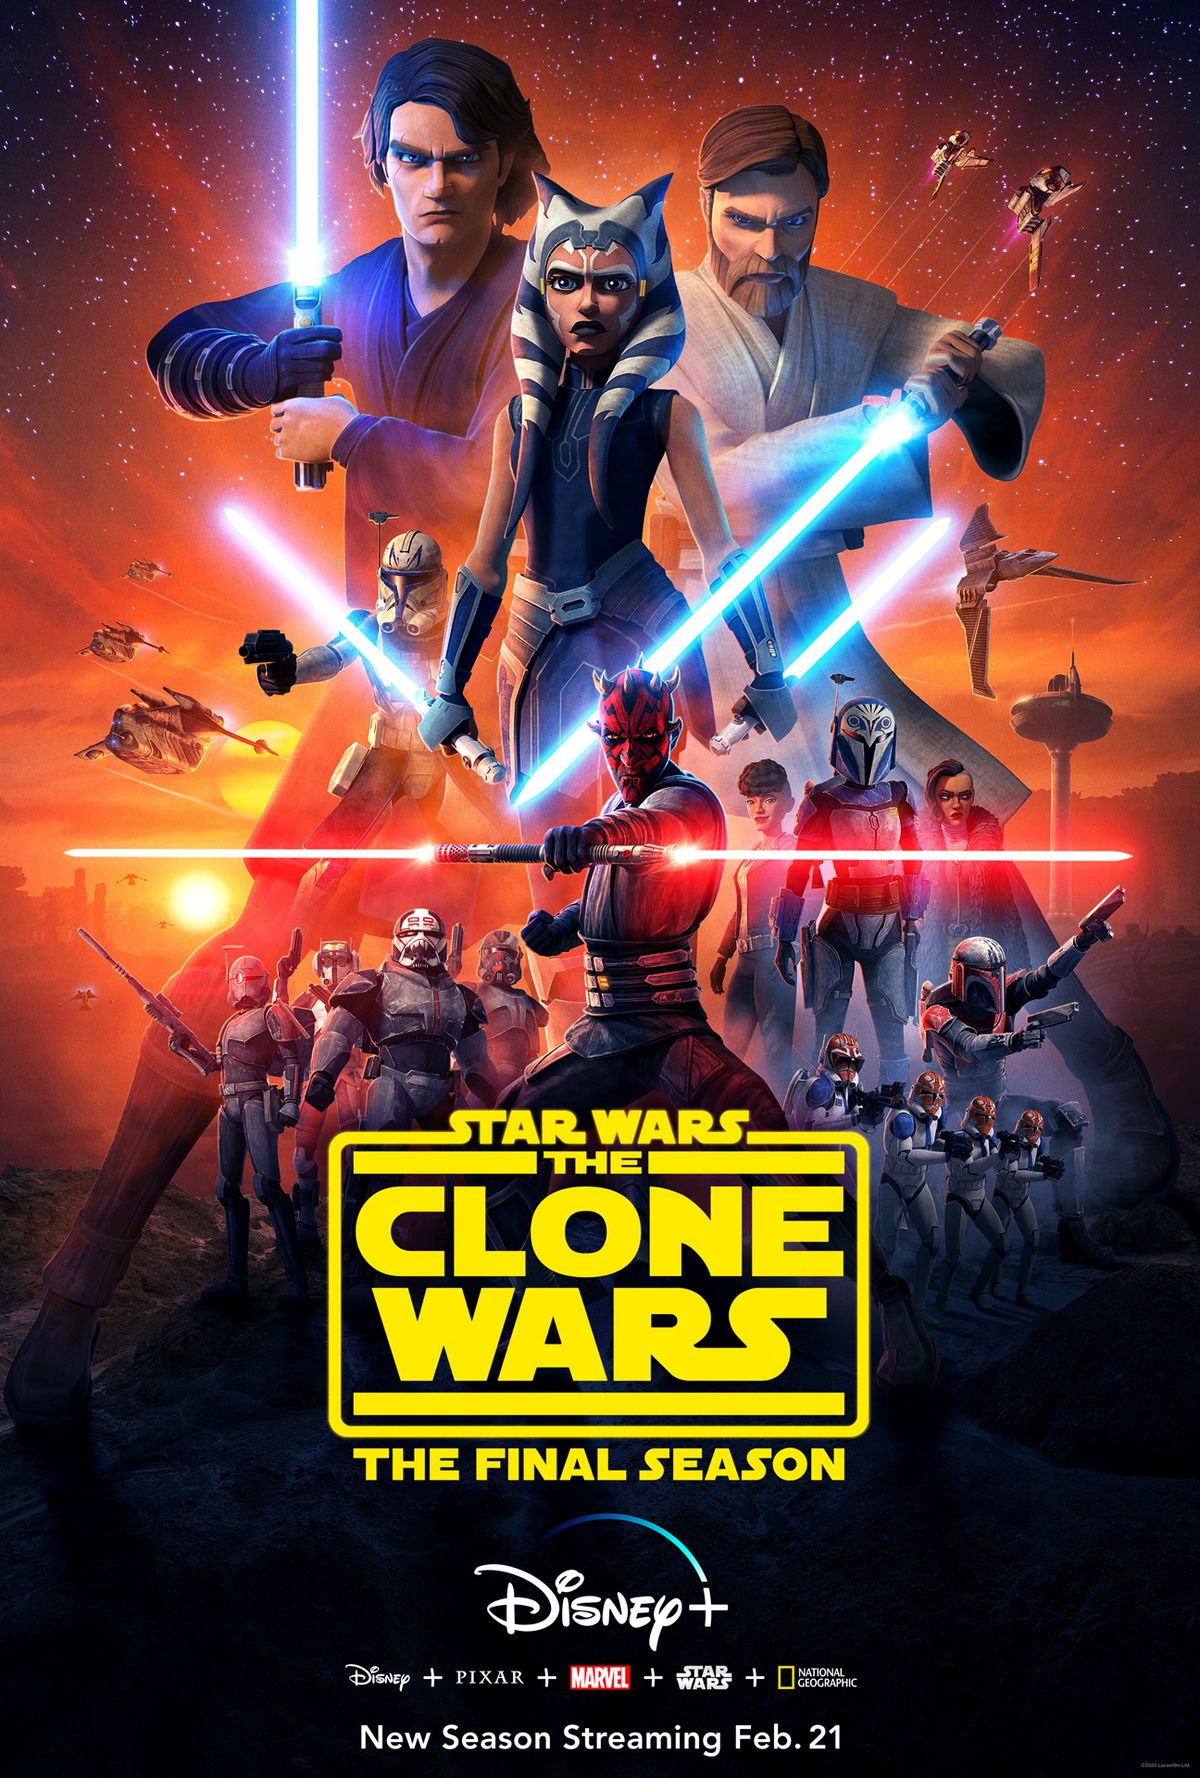 the poster for star wars: the clone wars, ahsoka front and center, obi-wan and anakin on either side